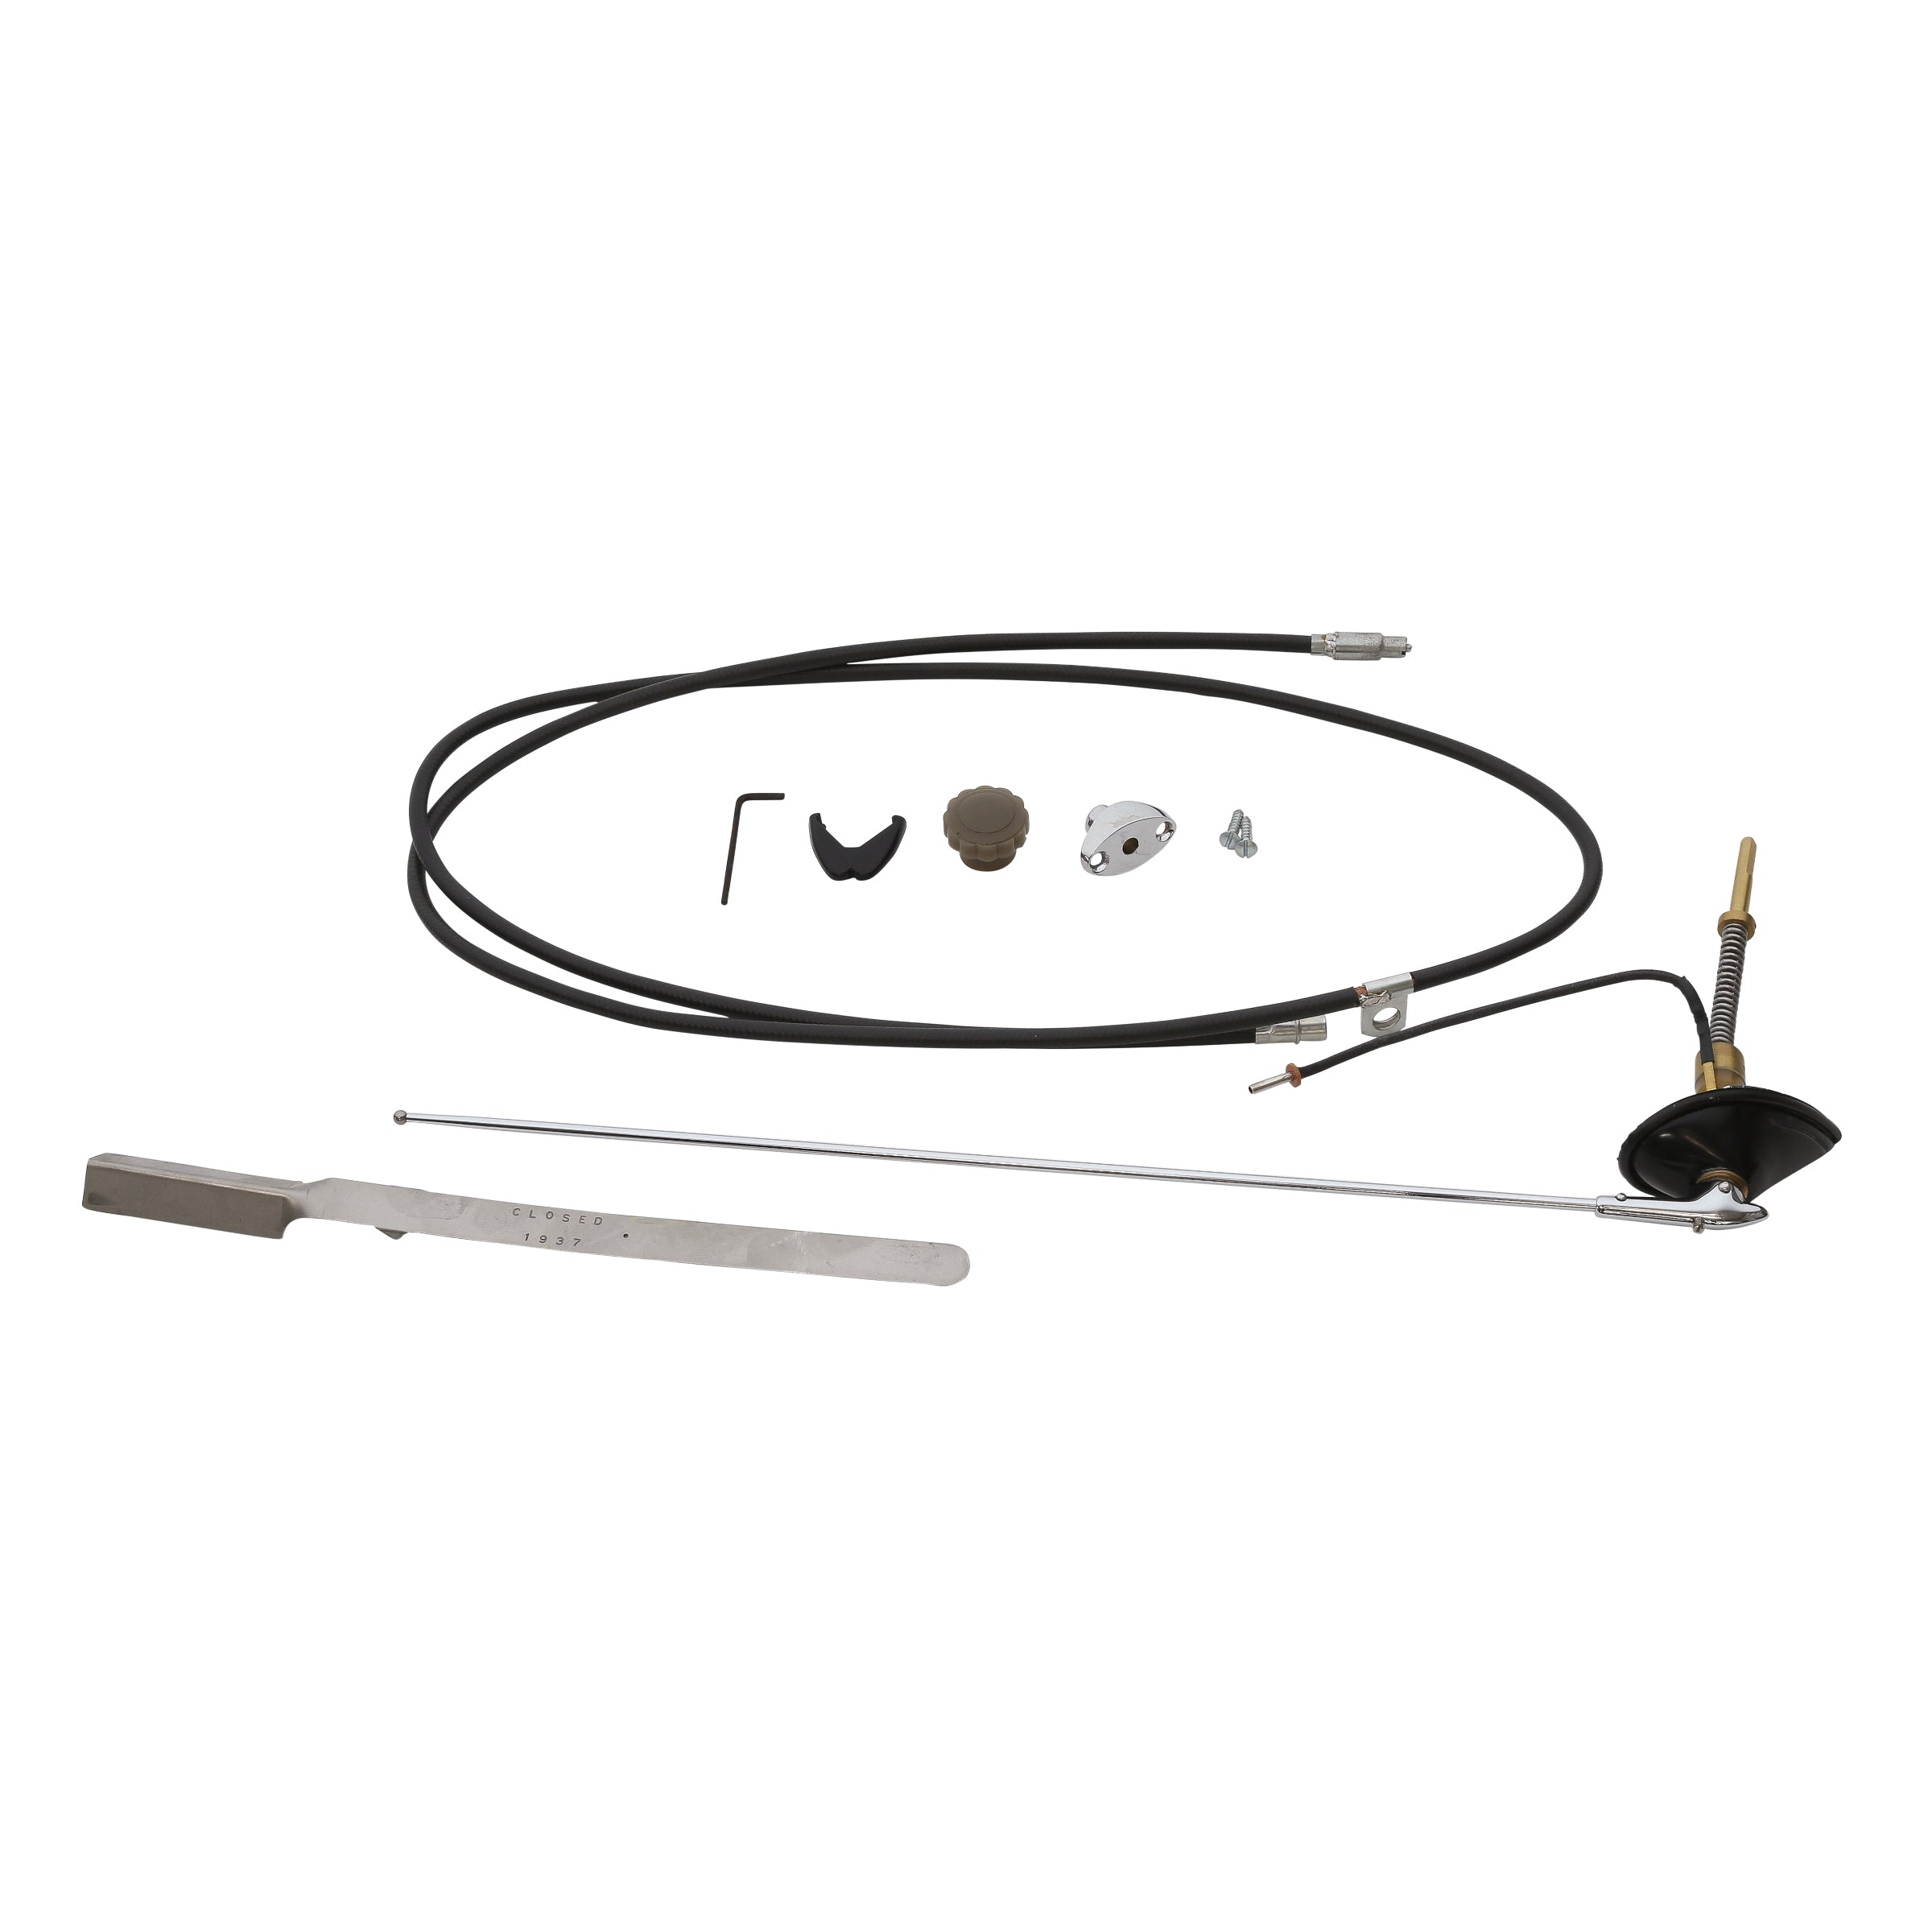 Antenna Kit • 1937 Standard Closed Car